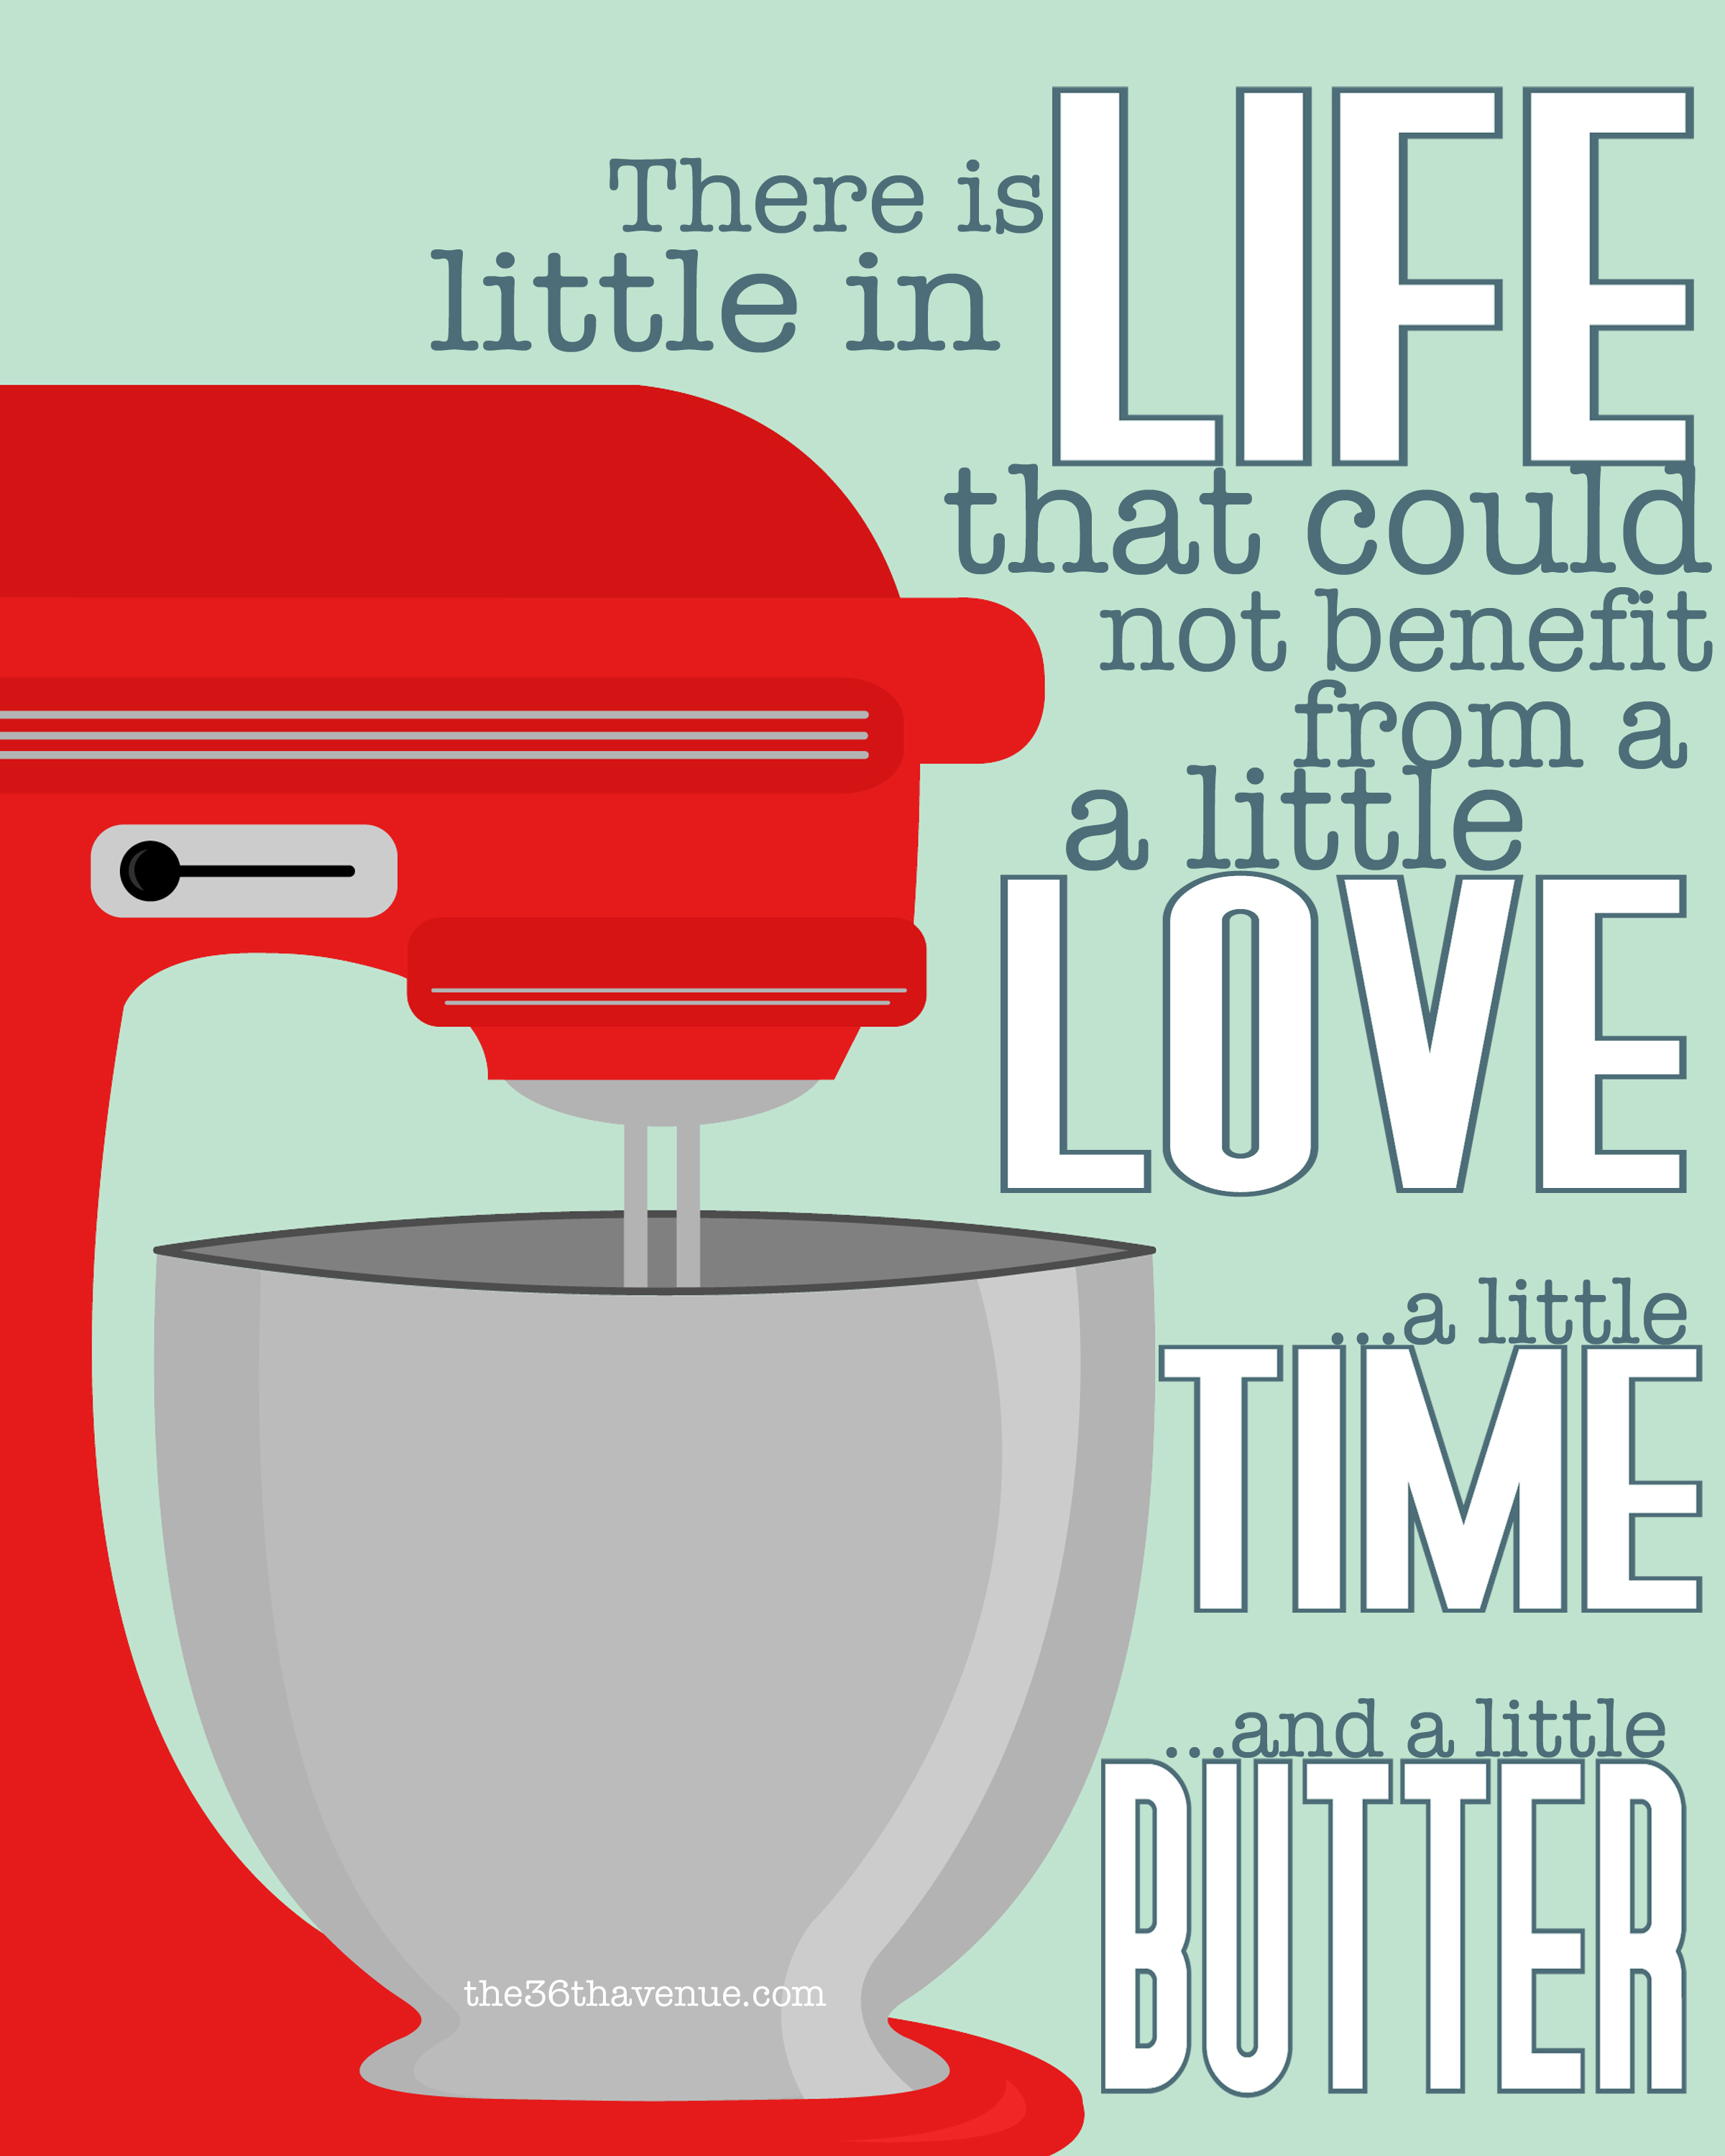 Kitchen Quotes And Jokes Quotesgram: Mom Cooking Quotes And Sayings. QuotesGram